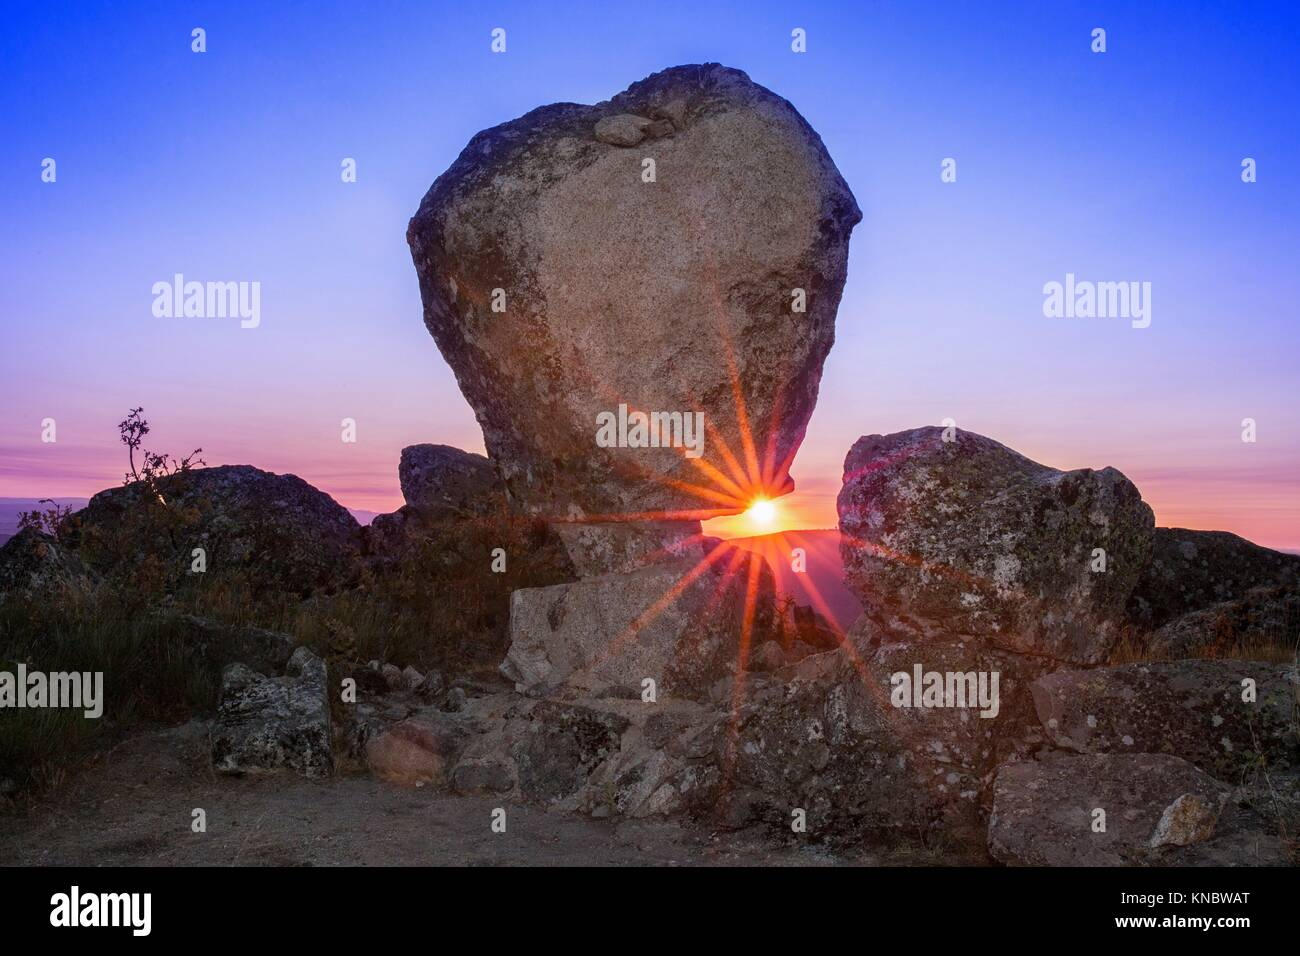 Sun rising between megalithic monument of Cancho Que Se Menea. In English shifting rock. Montanchez, Spain. - Stock Image